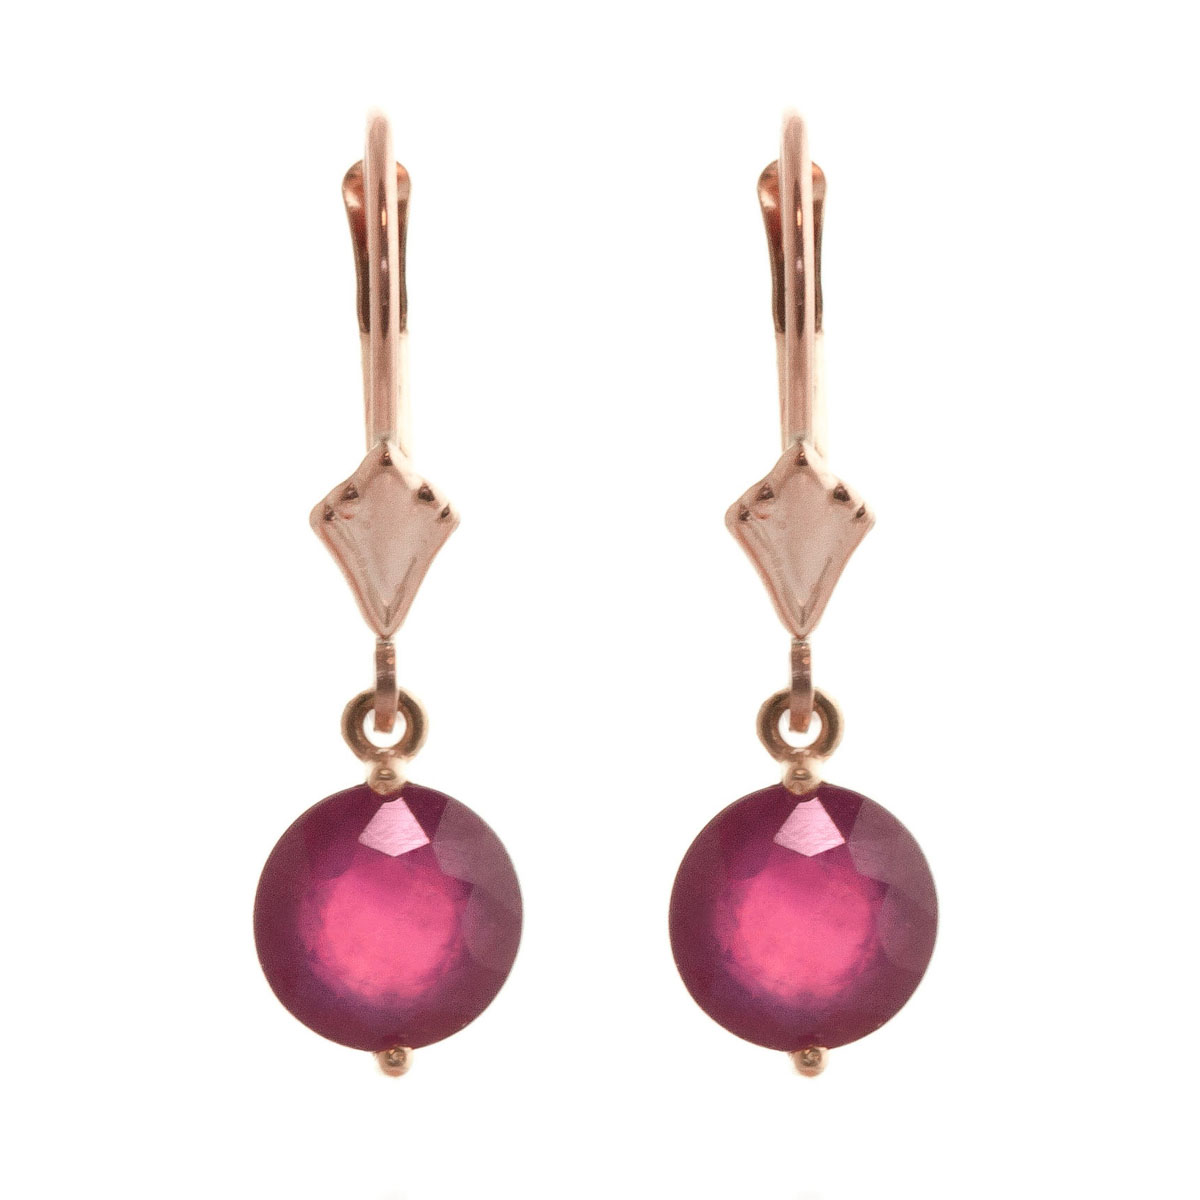 Ruby Drop Earrings 4 ctw in 9ct Rose Gold